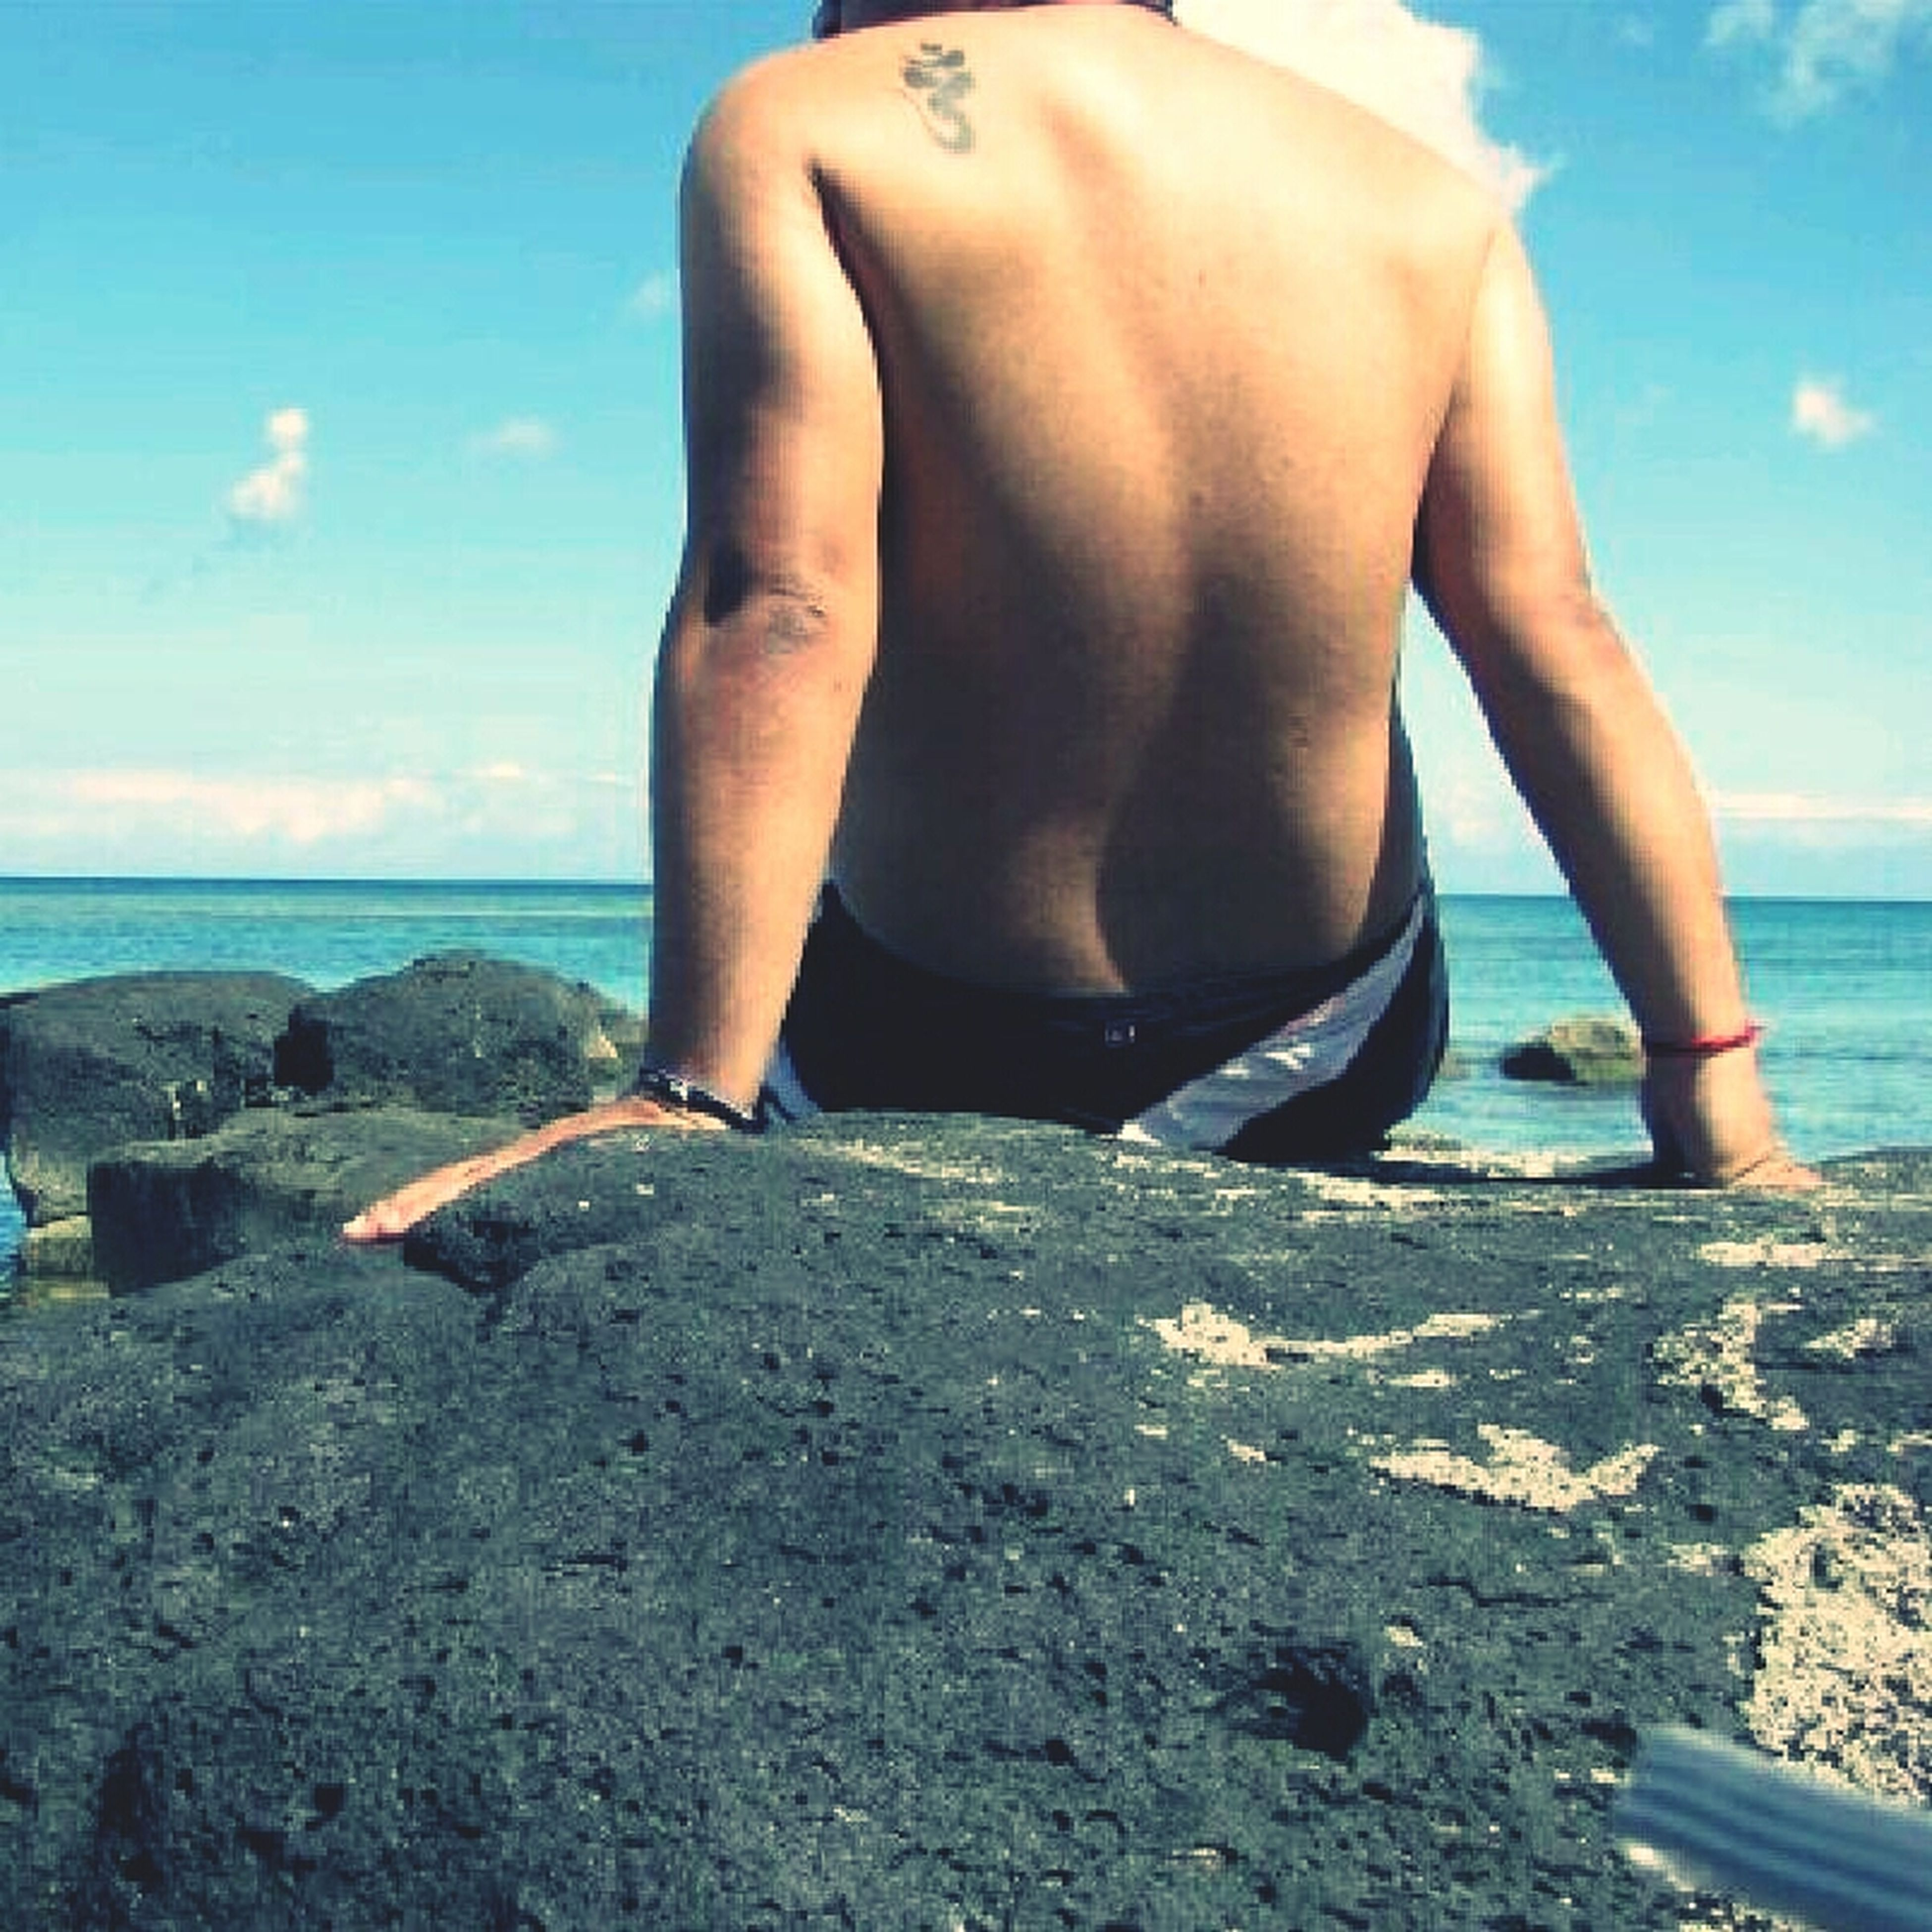 sea, beach, horizon over water, water, sky, shore, lifestyles, leisure activity, person, standing, rock - object, vacations, low section, sand, scenics, rear view, tranquility, nature